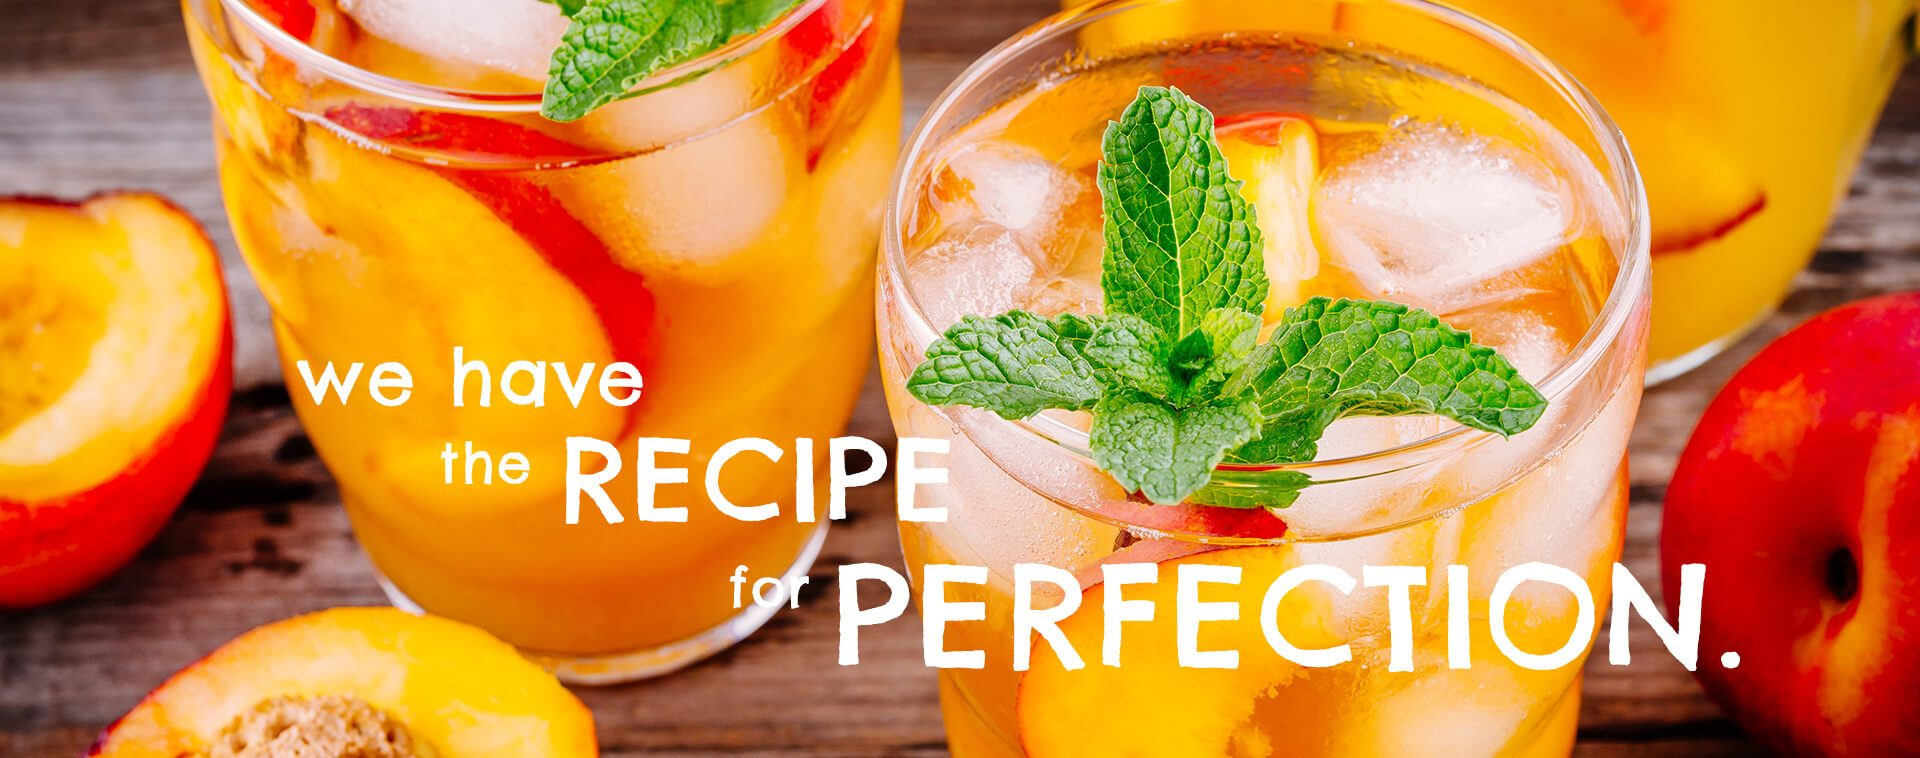 We have the recipe for perfection